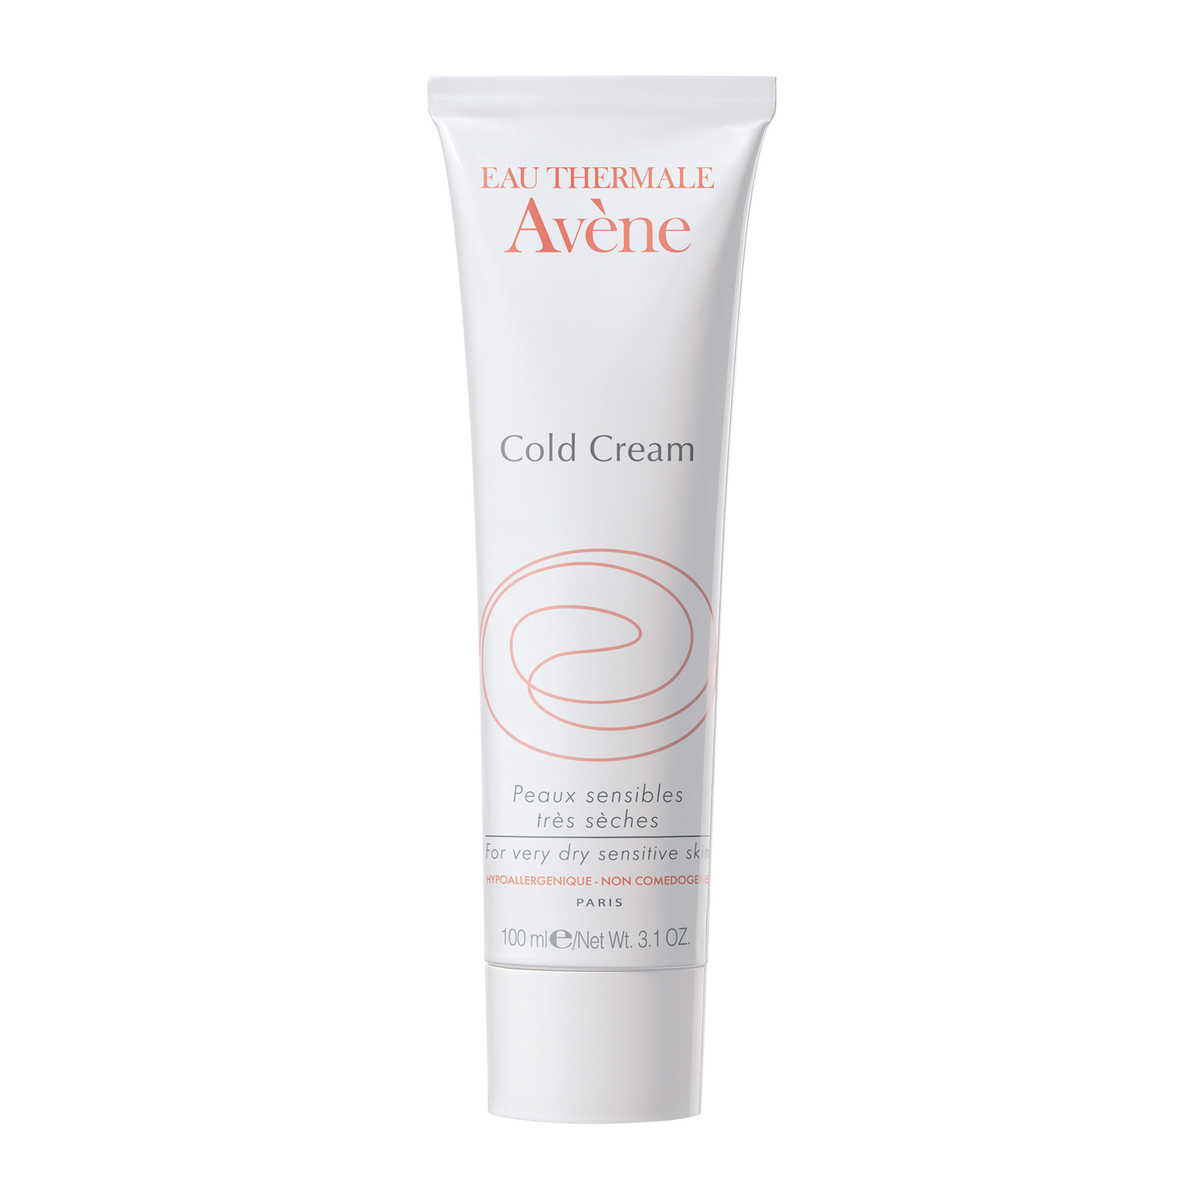 av_egrave_ne_cold_cream_100ml_1394723316.png